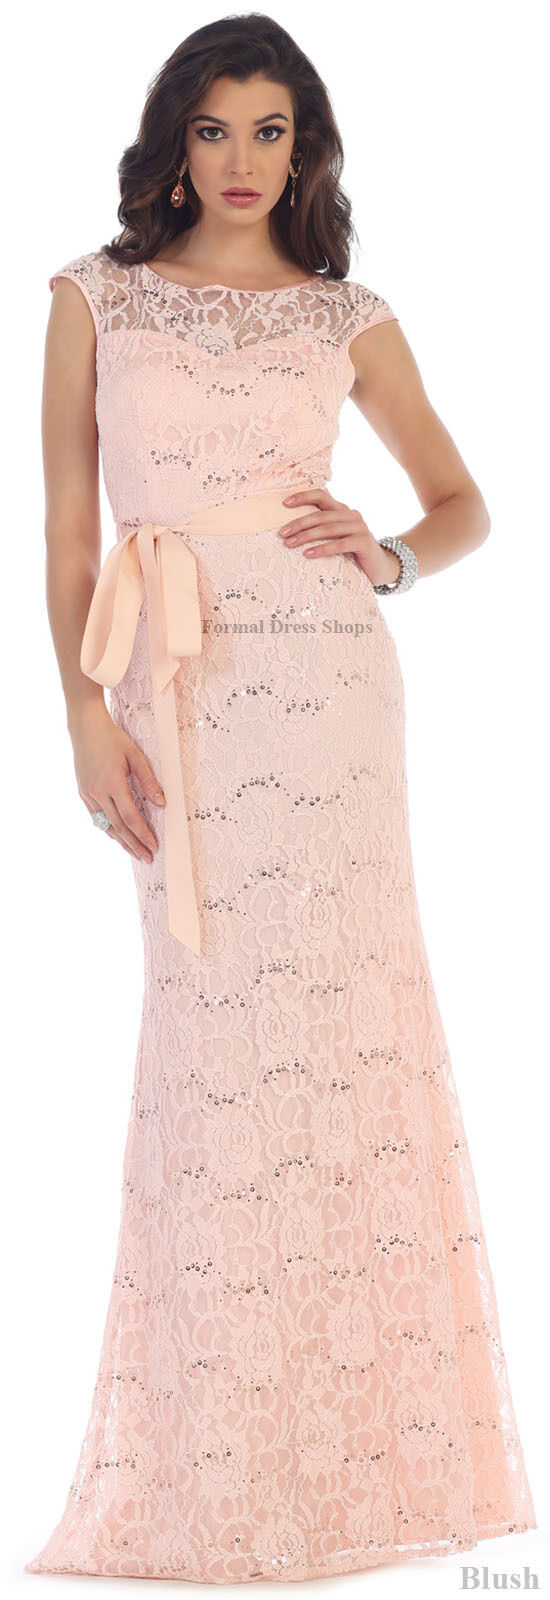 MOTHER OF BRIDE GROOM DRESSES CHURCH EVENING GOWNS FORMAL WEAR UNDER $100 SALE